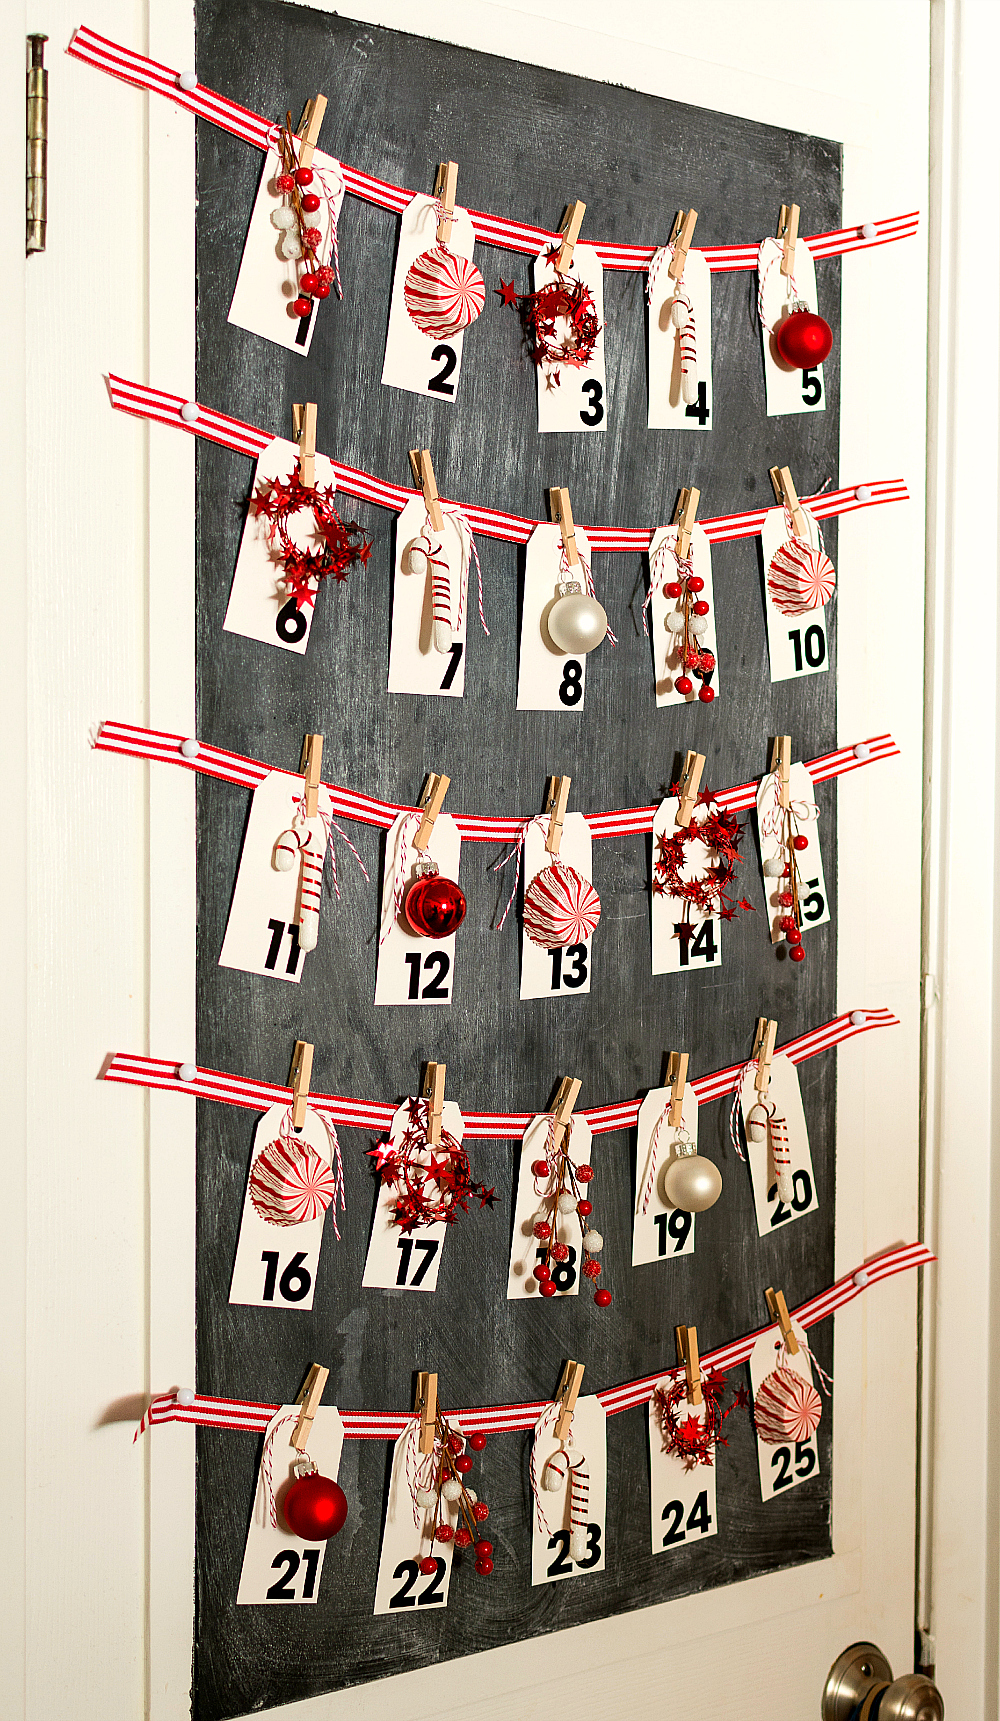 Mini Calendar Craft Ideas